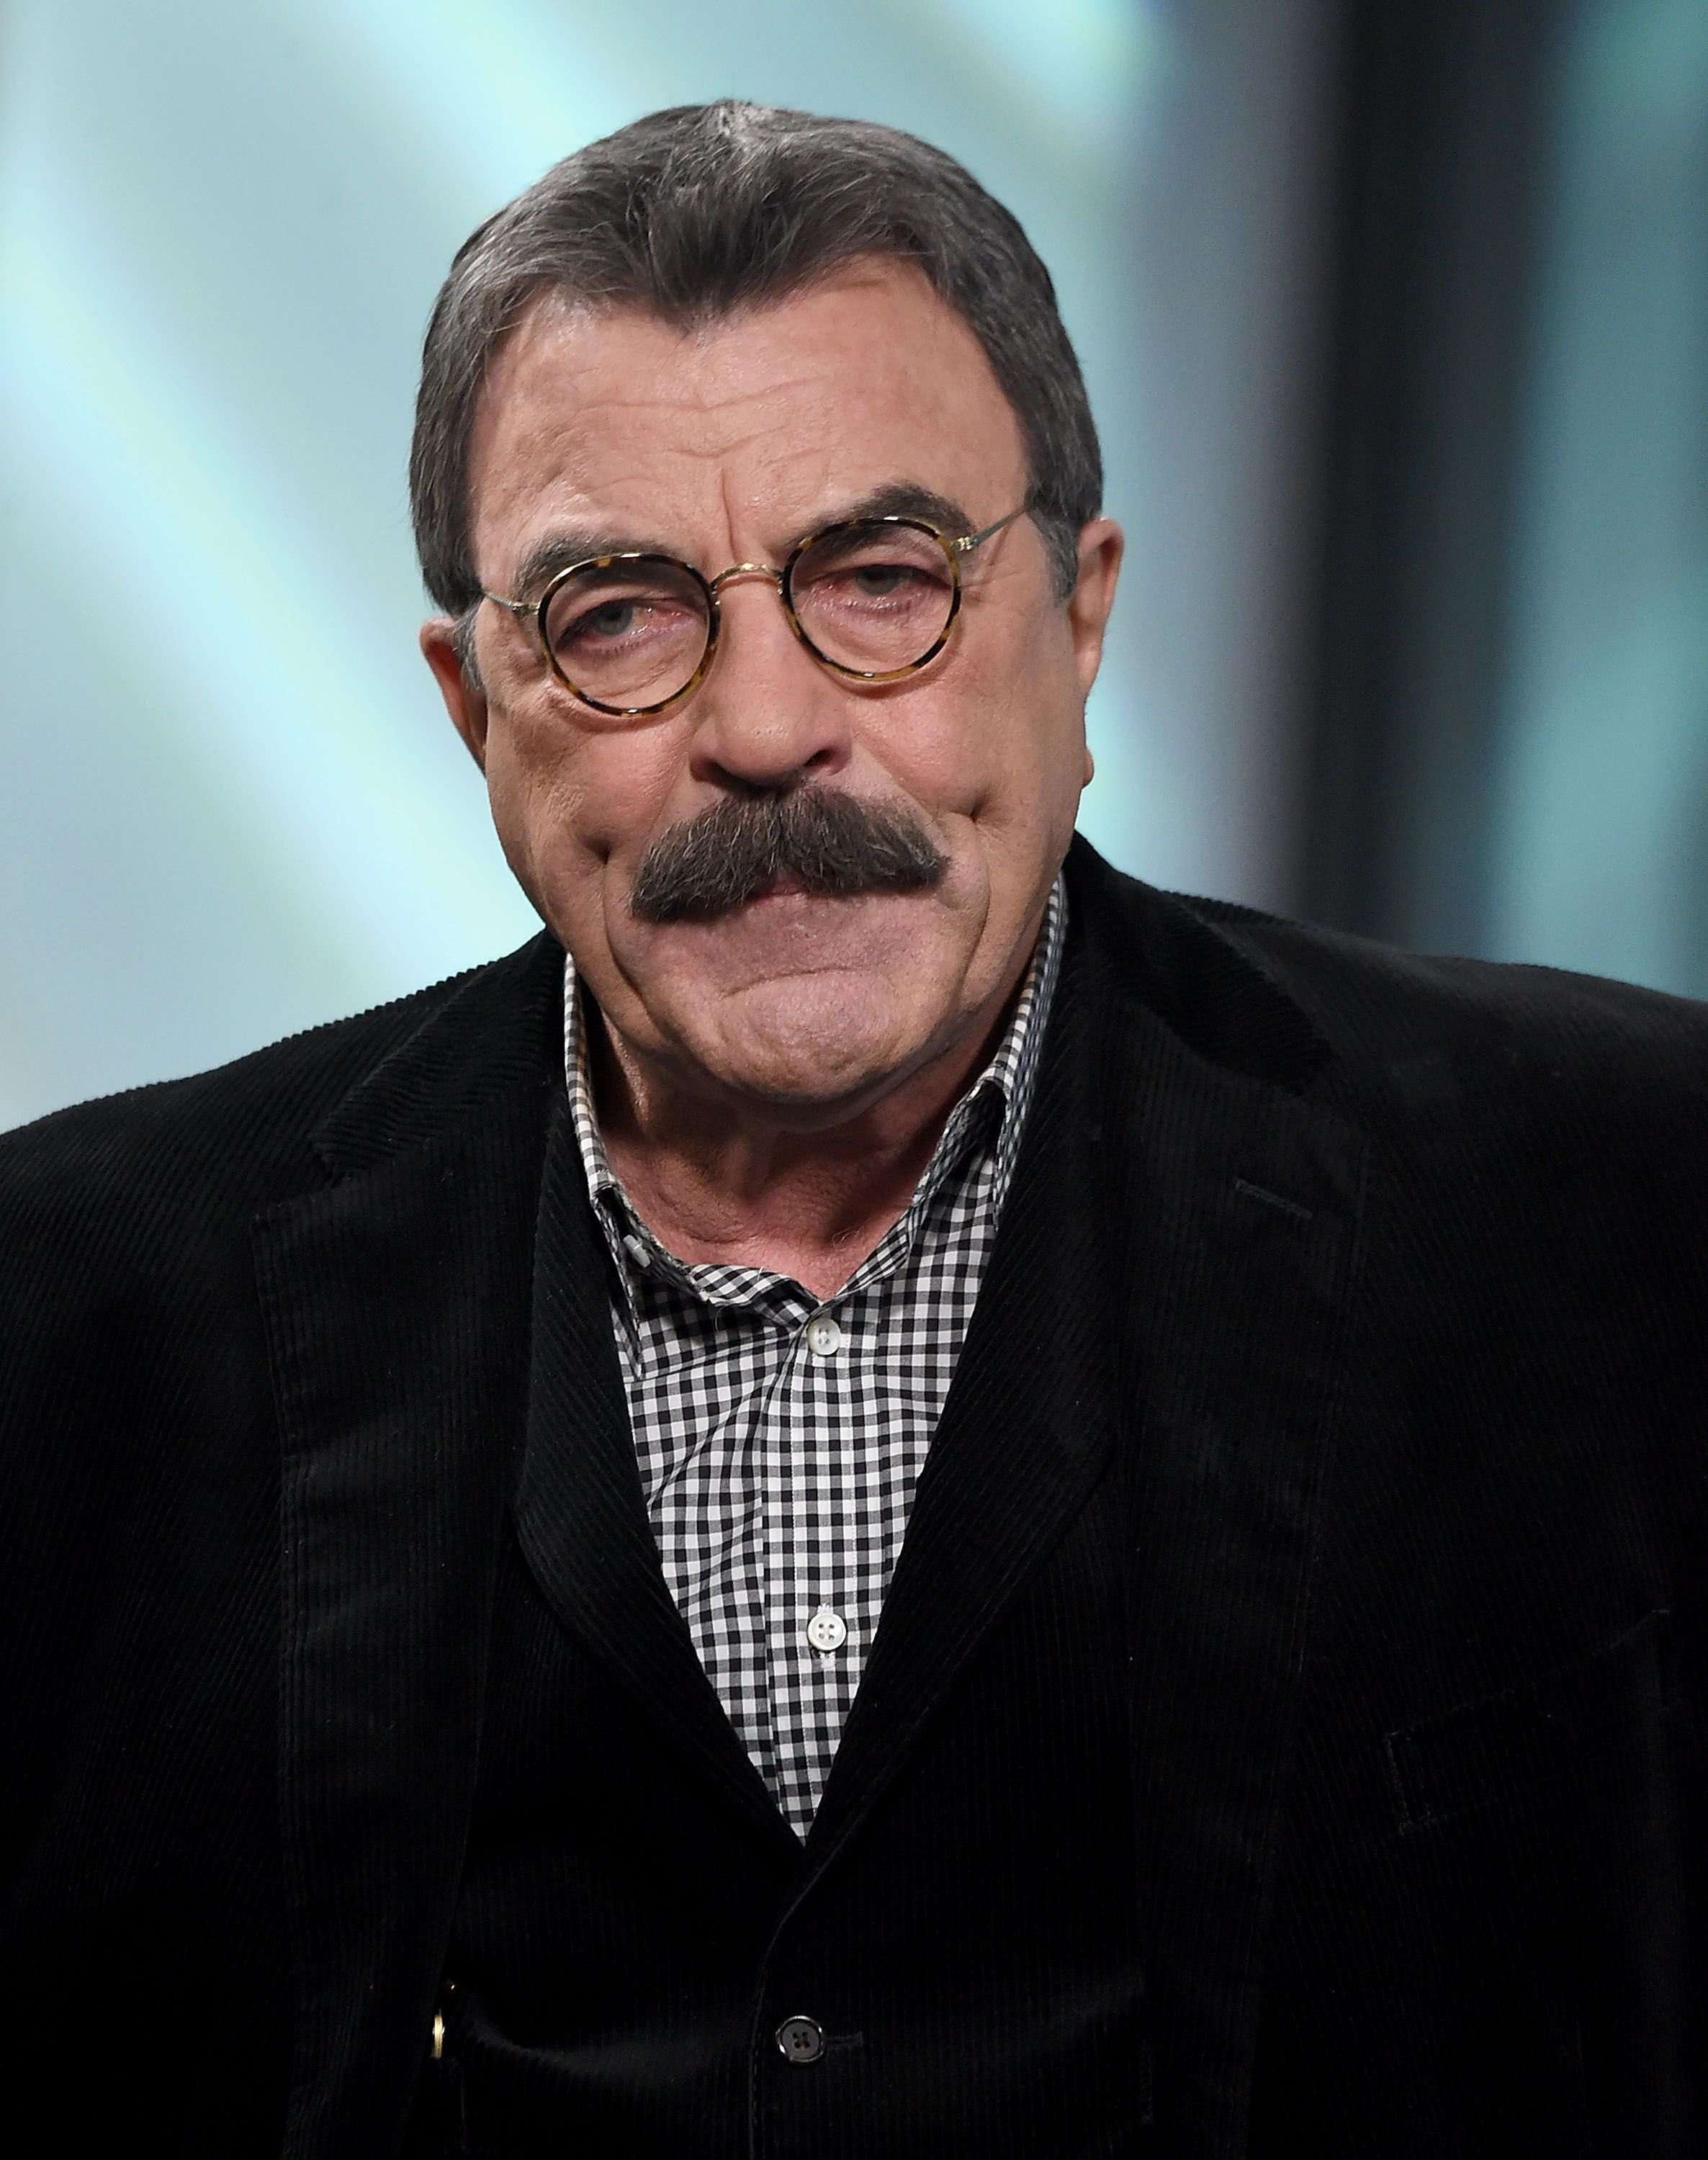 """Tom Selleck at the Build Series to discuss his show """"Blue Bloods at Build Studio on September 29, 2017 